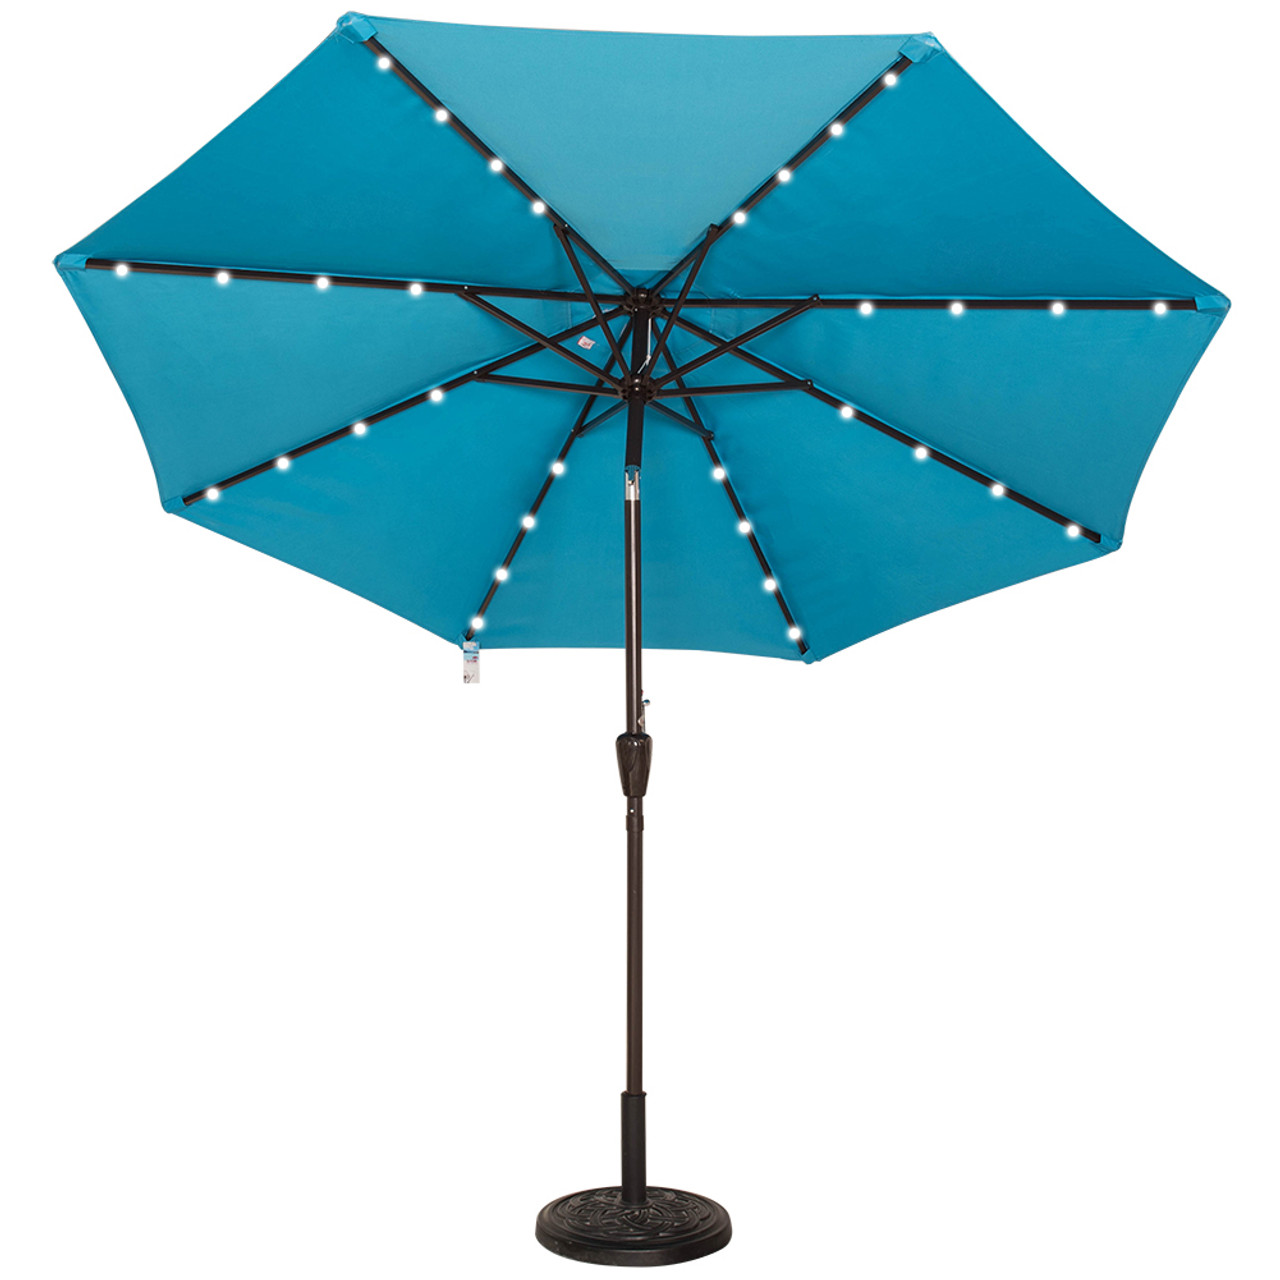 foot decor com patio ls furniture outdoor prod serenityhealth with src s crank bases solar sunnydaze on umbrellas sale aluminum tilt umbrella images living sears b